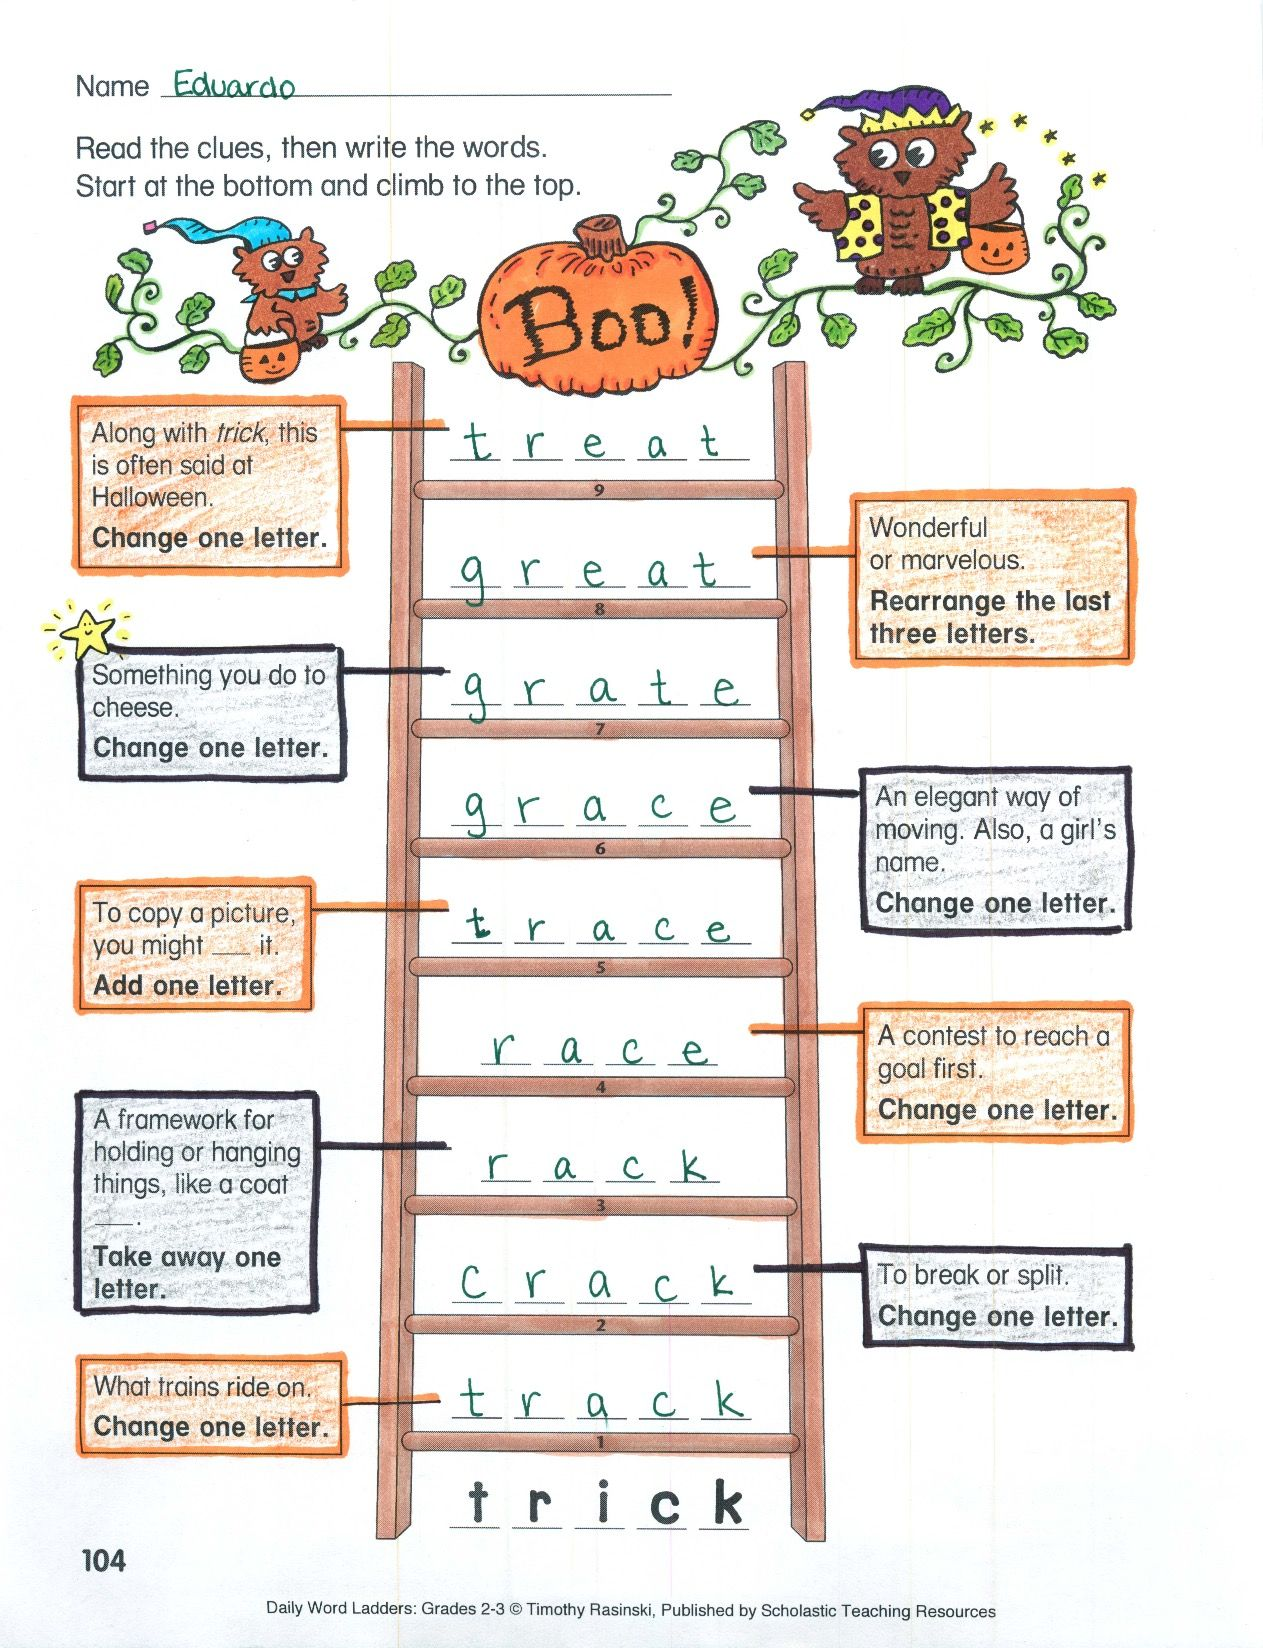 Students Begin At The Bottom Of The Ladder Then Add